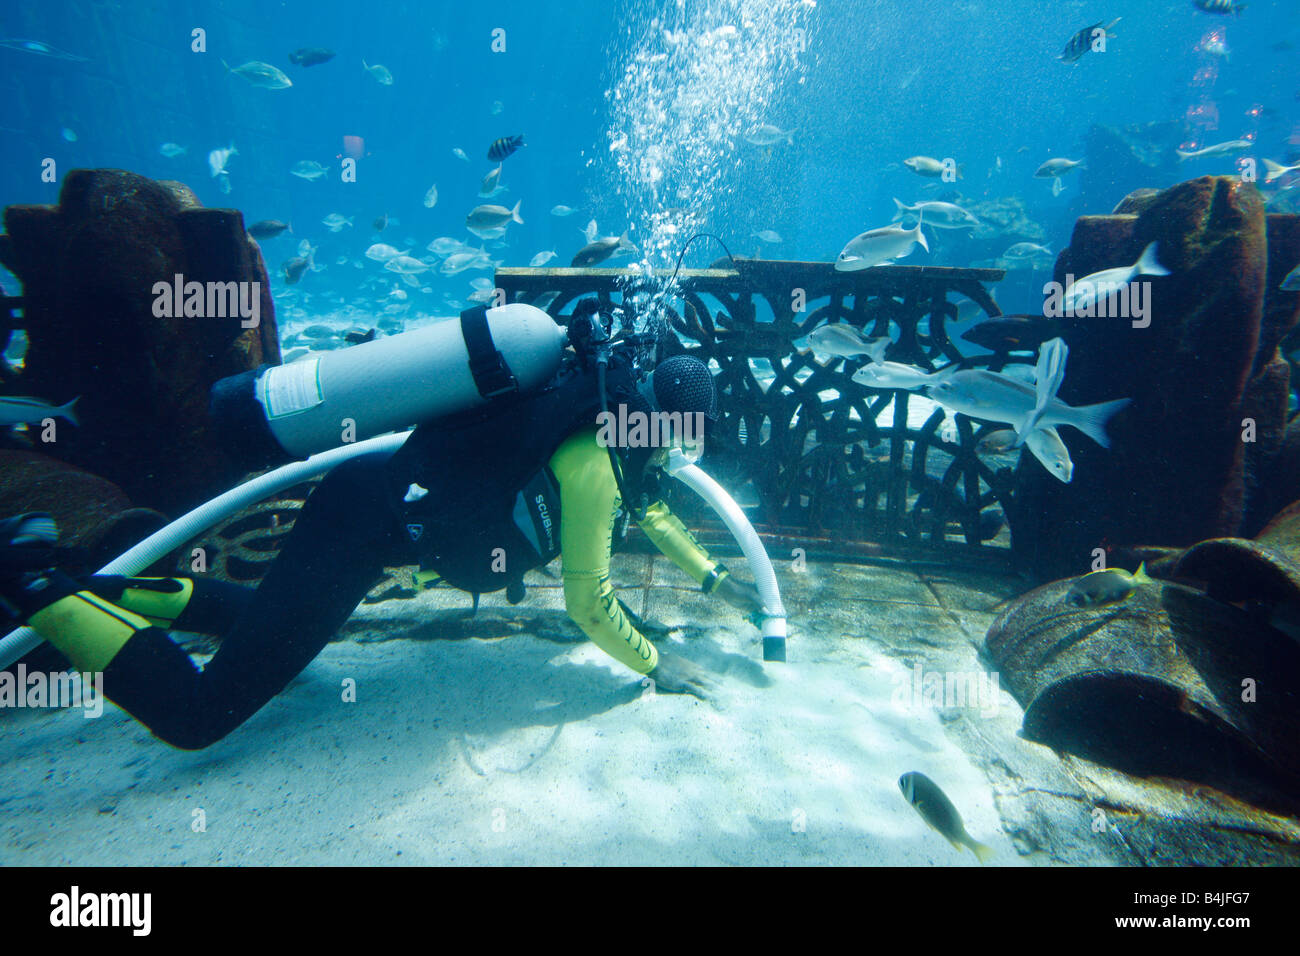 Diver cleaning the Ambassador Laggon an 11 Million Liter Fish Aquarium Atlantis Hotel The Palm Dubai United Arab - Stock Image